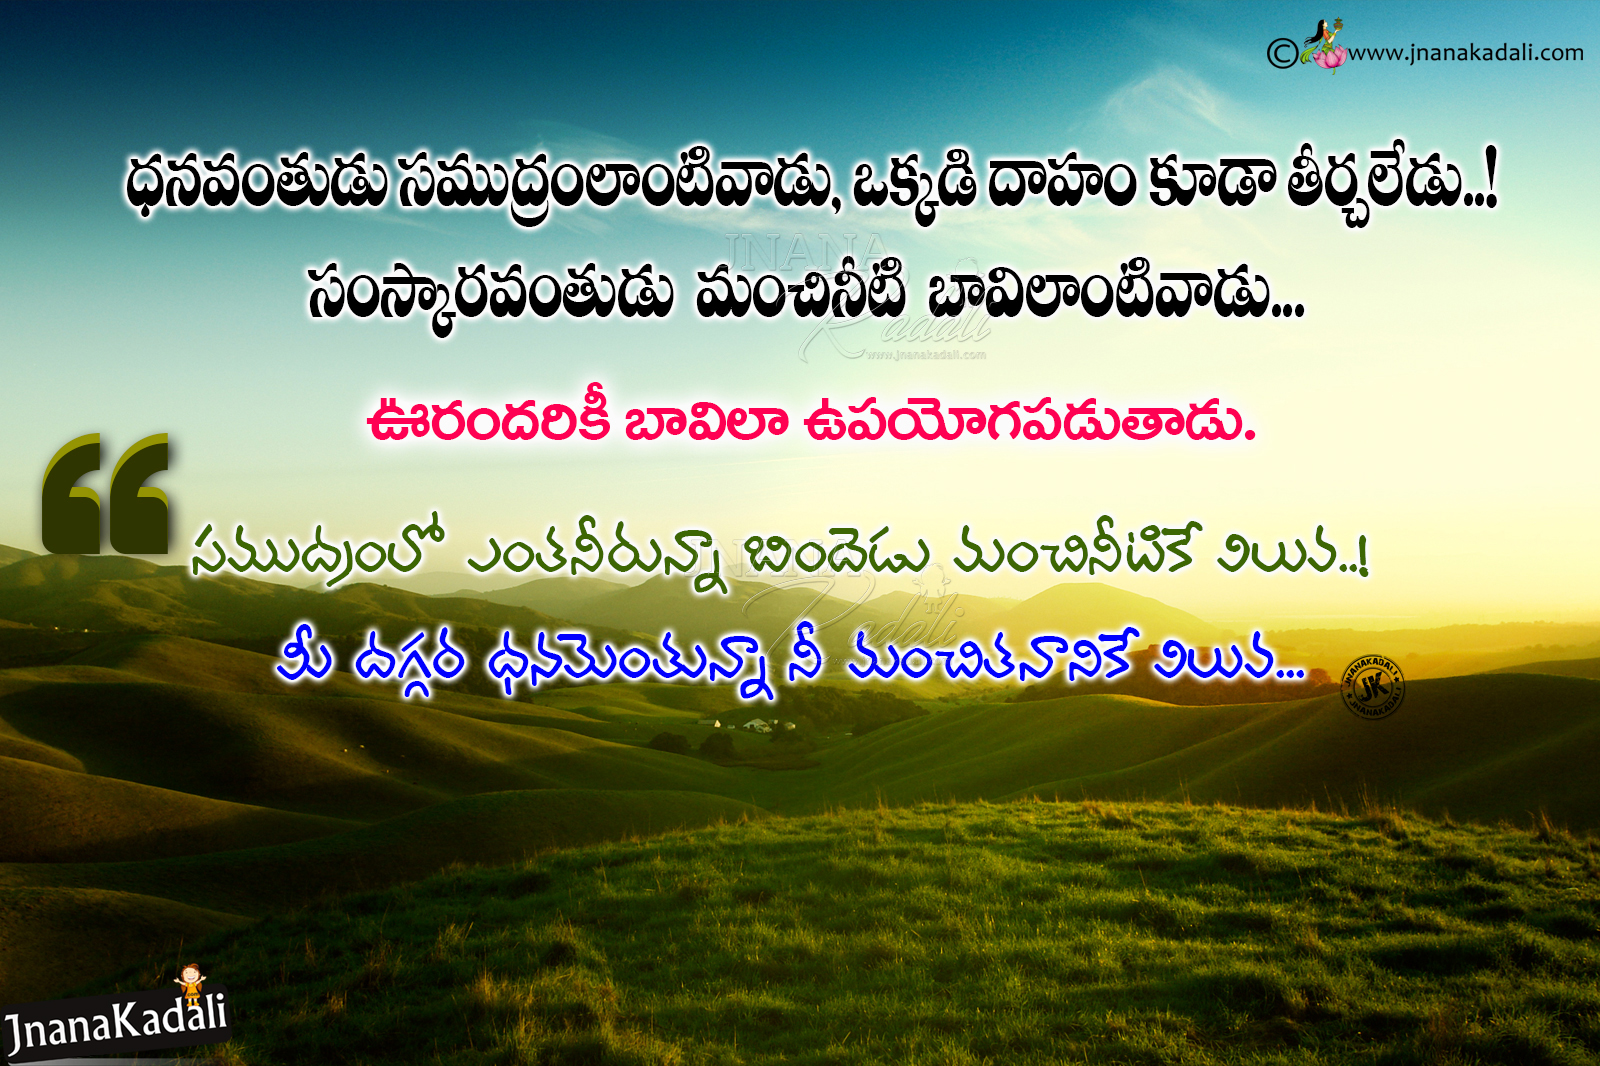 Free Daily Quotes Best Inspirational Telugu Quotestelugu Using Proverb Quotes